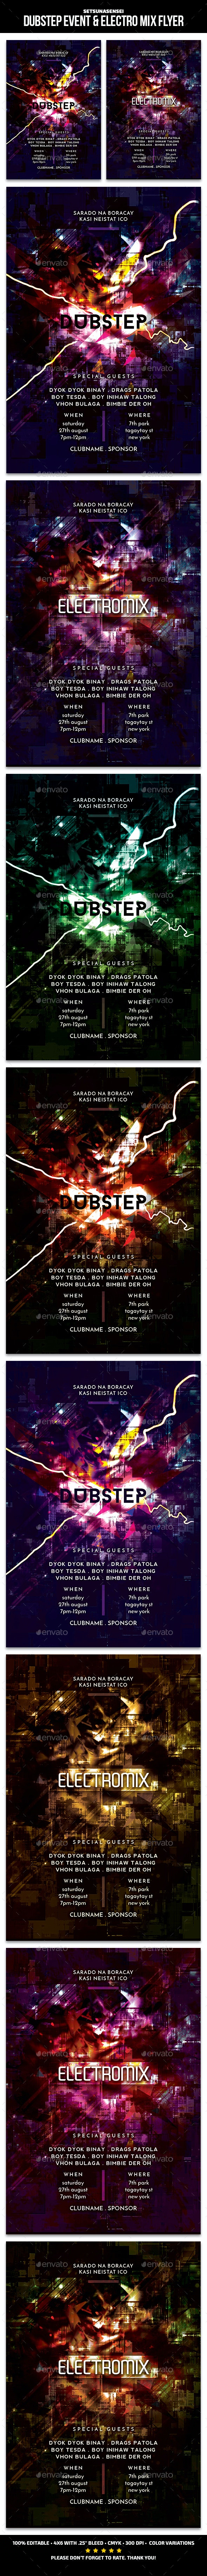 Dubstep Event & Electro Mix Flyer - Events Flyers